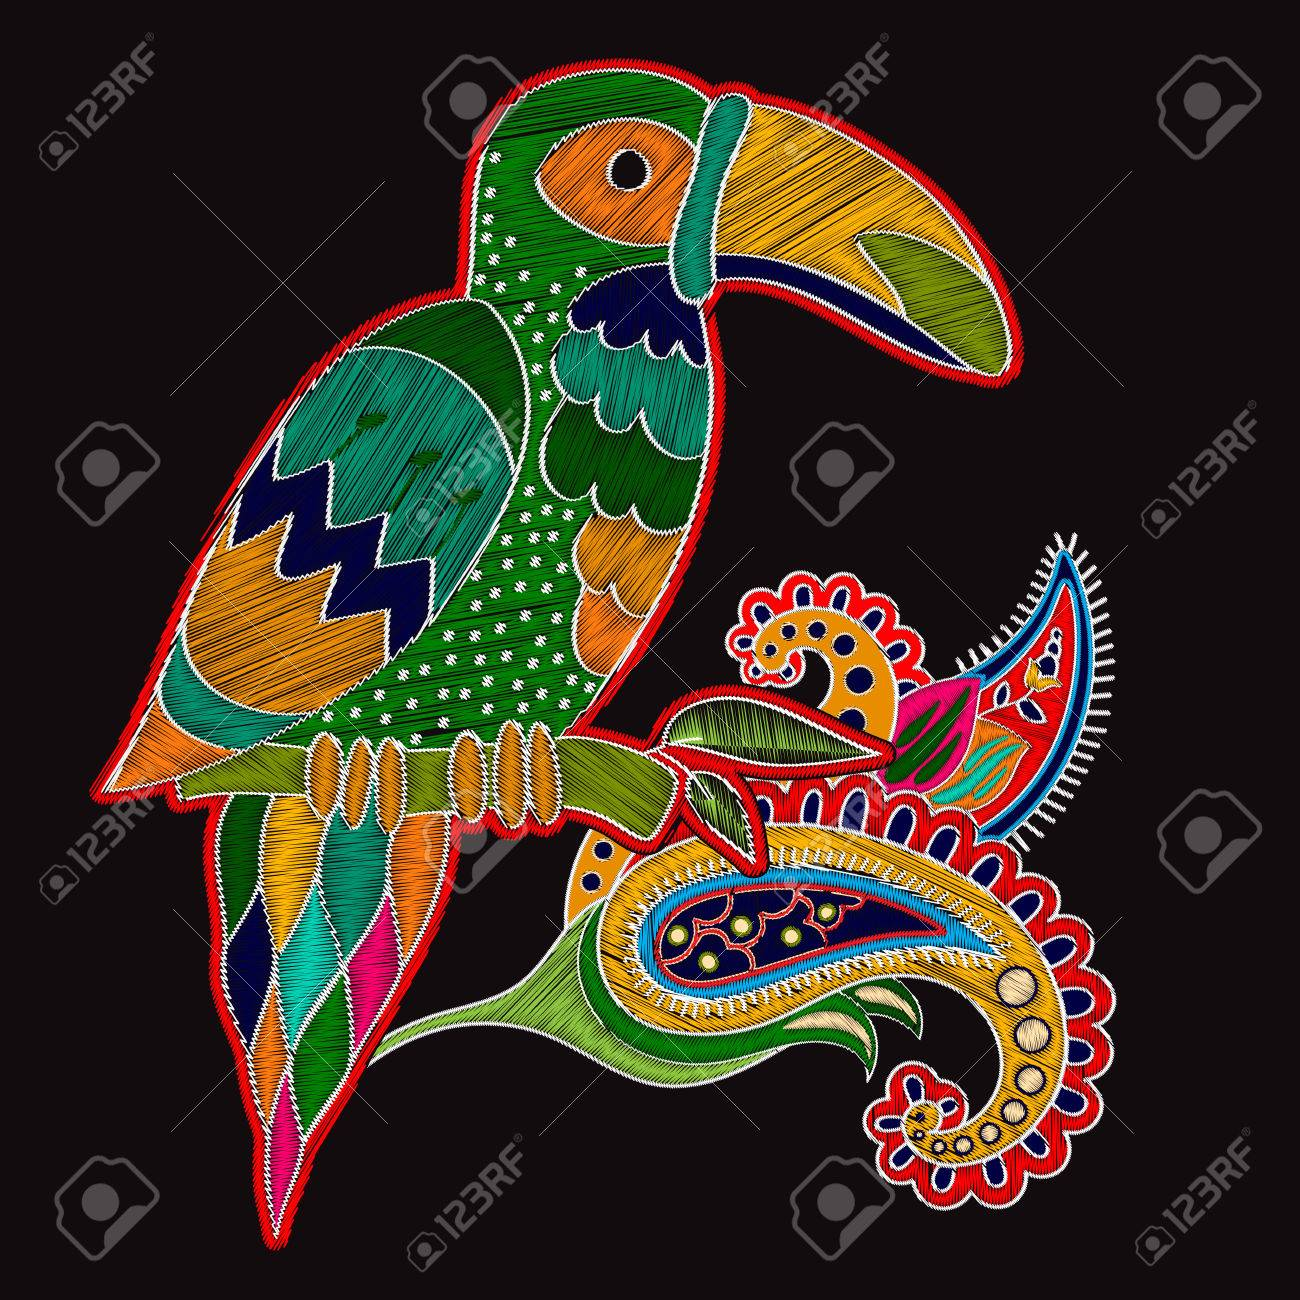 Embroidery oriental print with big bird floral folk template embroidery oriental print with big bird floral folk template with toucan and paisley flower on pronofoot35fo Image collections